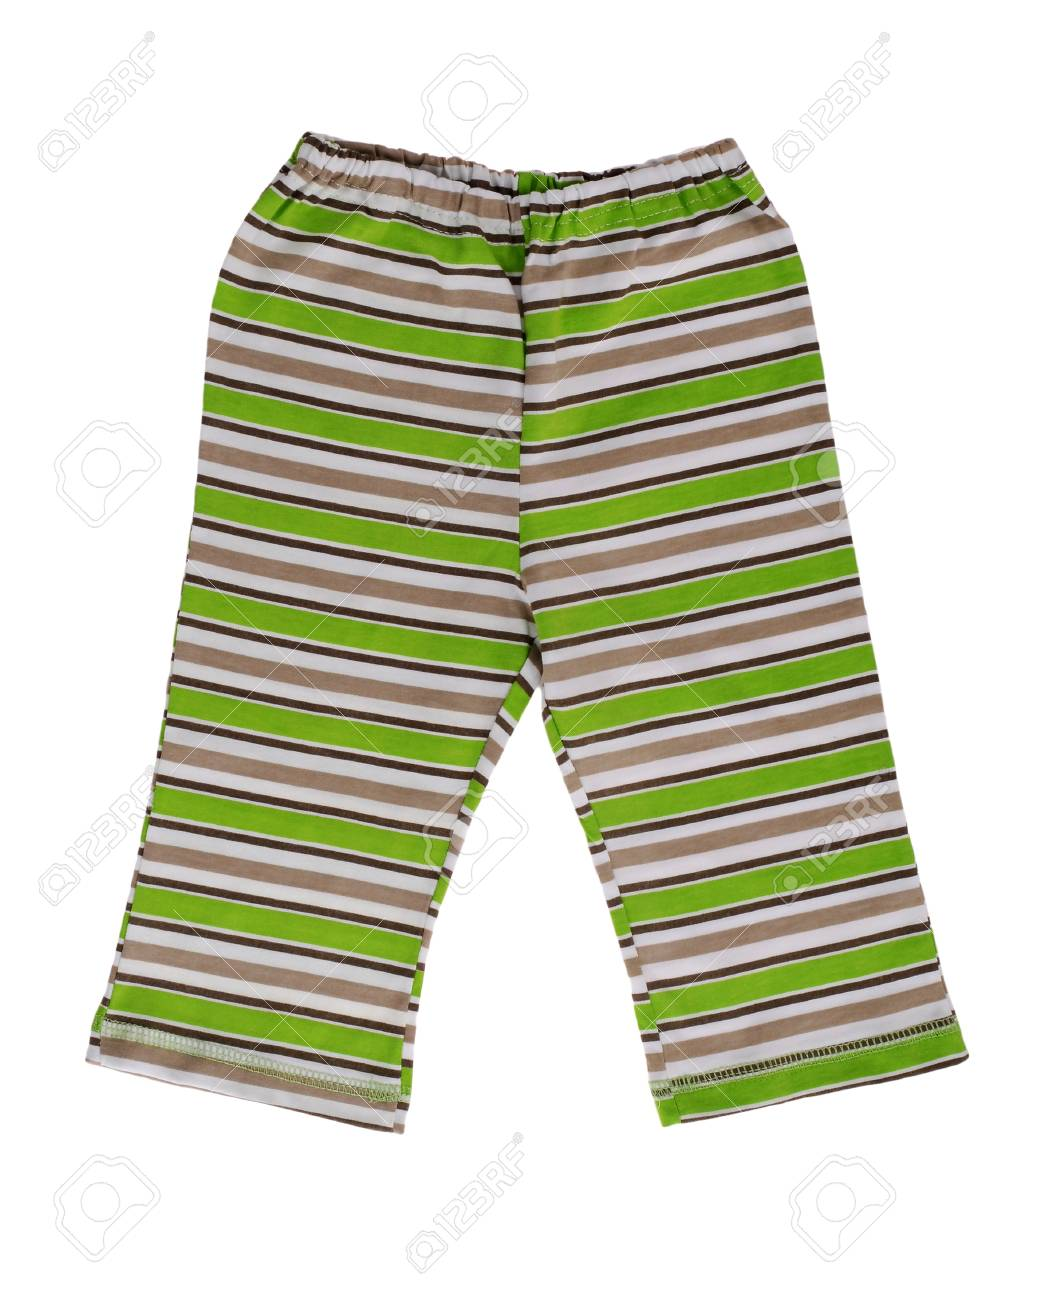 8d8add298f44 Childrens Striped Pants Isolated On A White Background Stock Photo ...